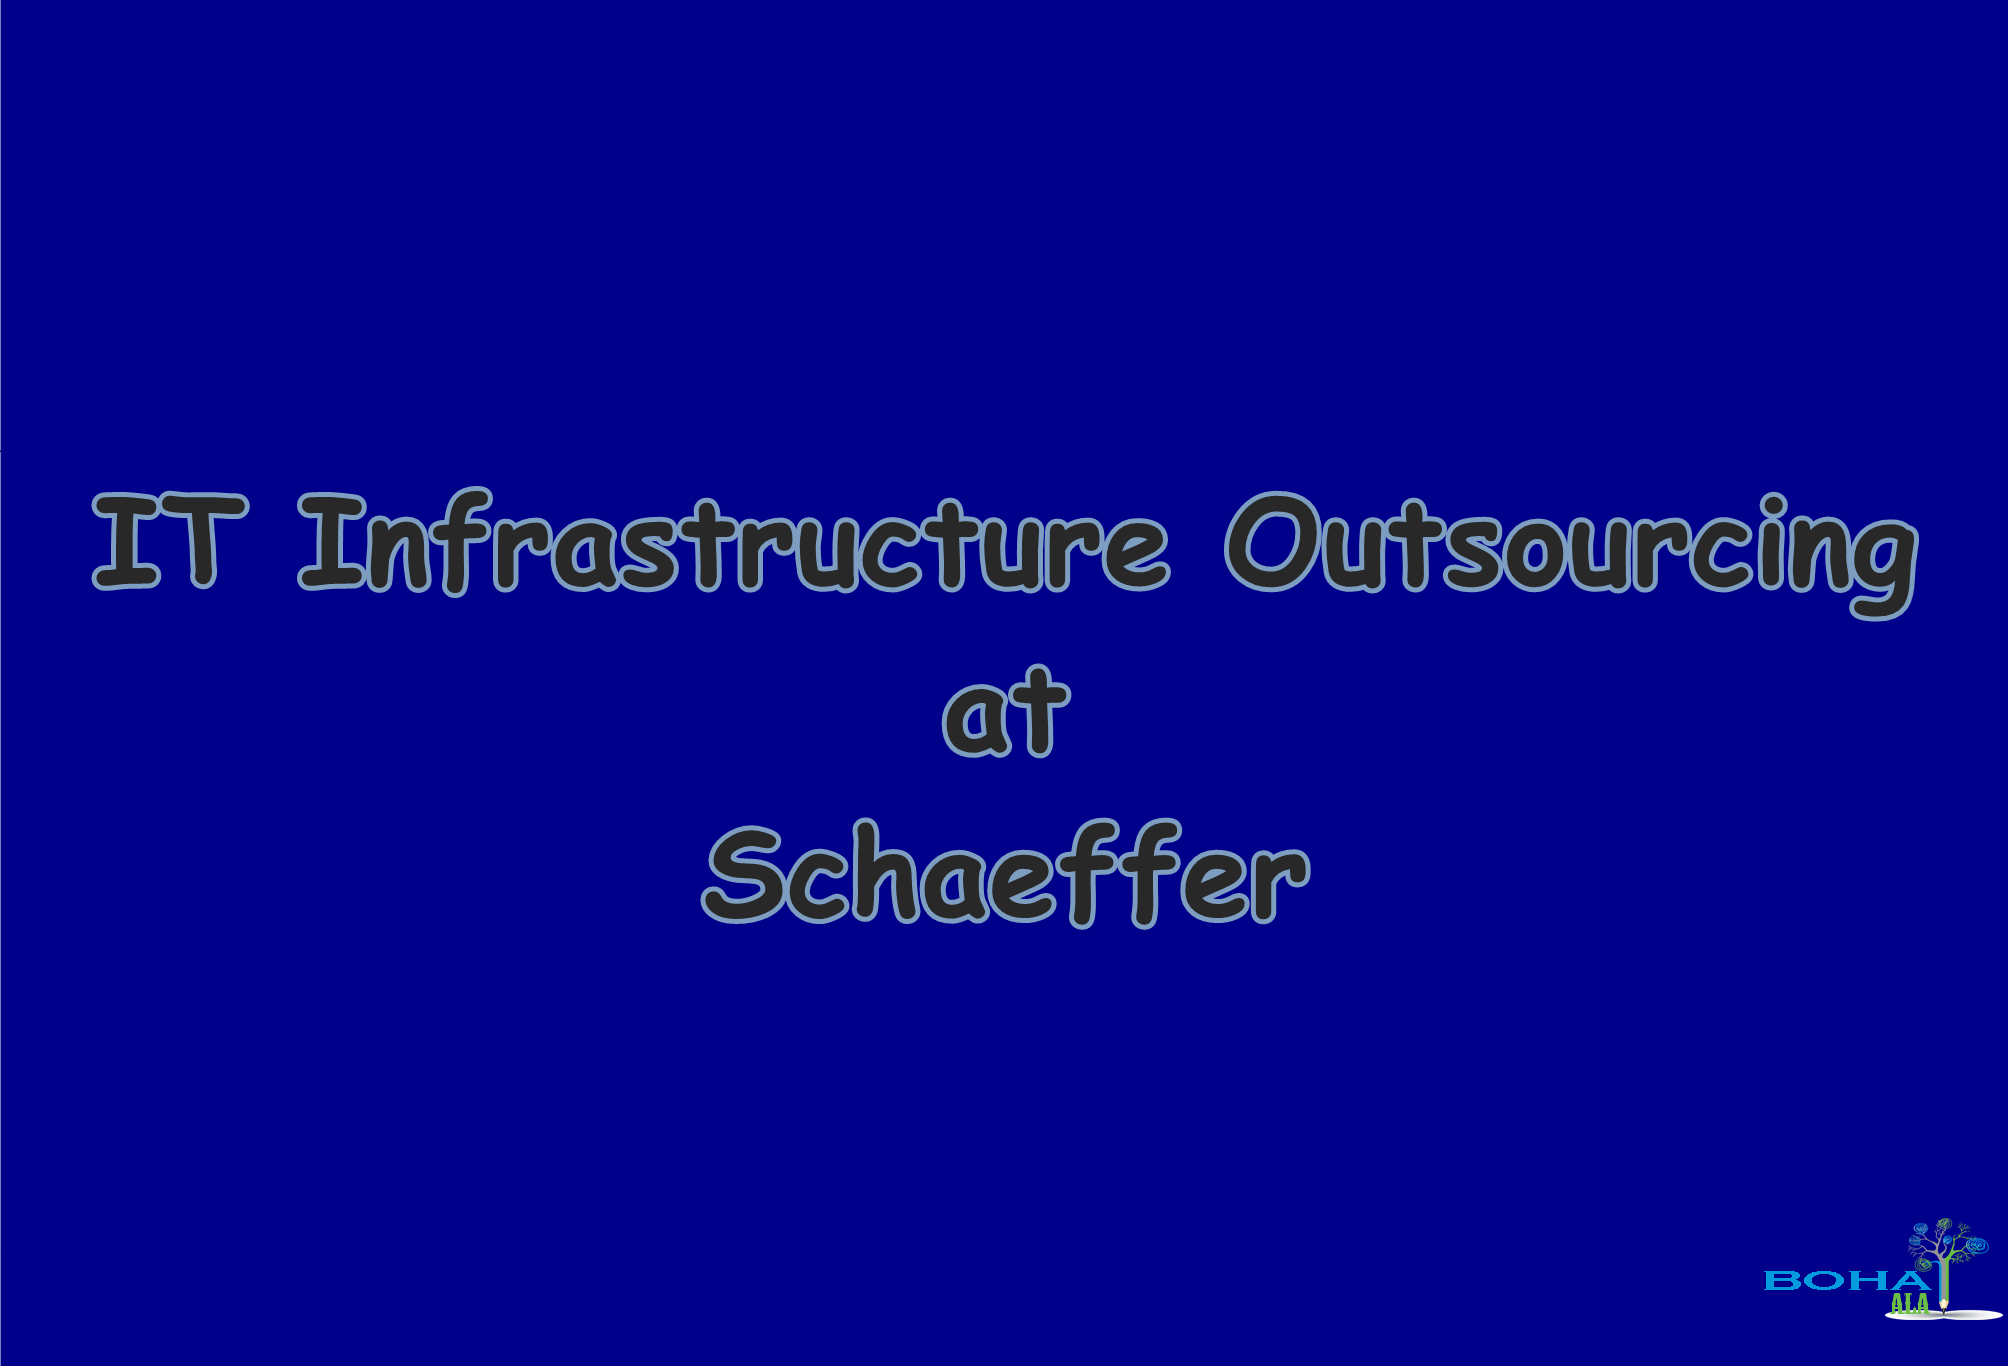 IT Infrastructure Outsourcing at Schaeffer